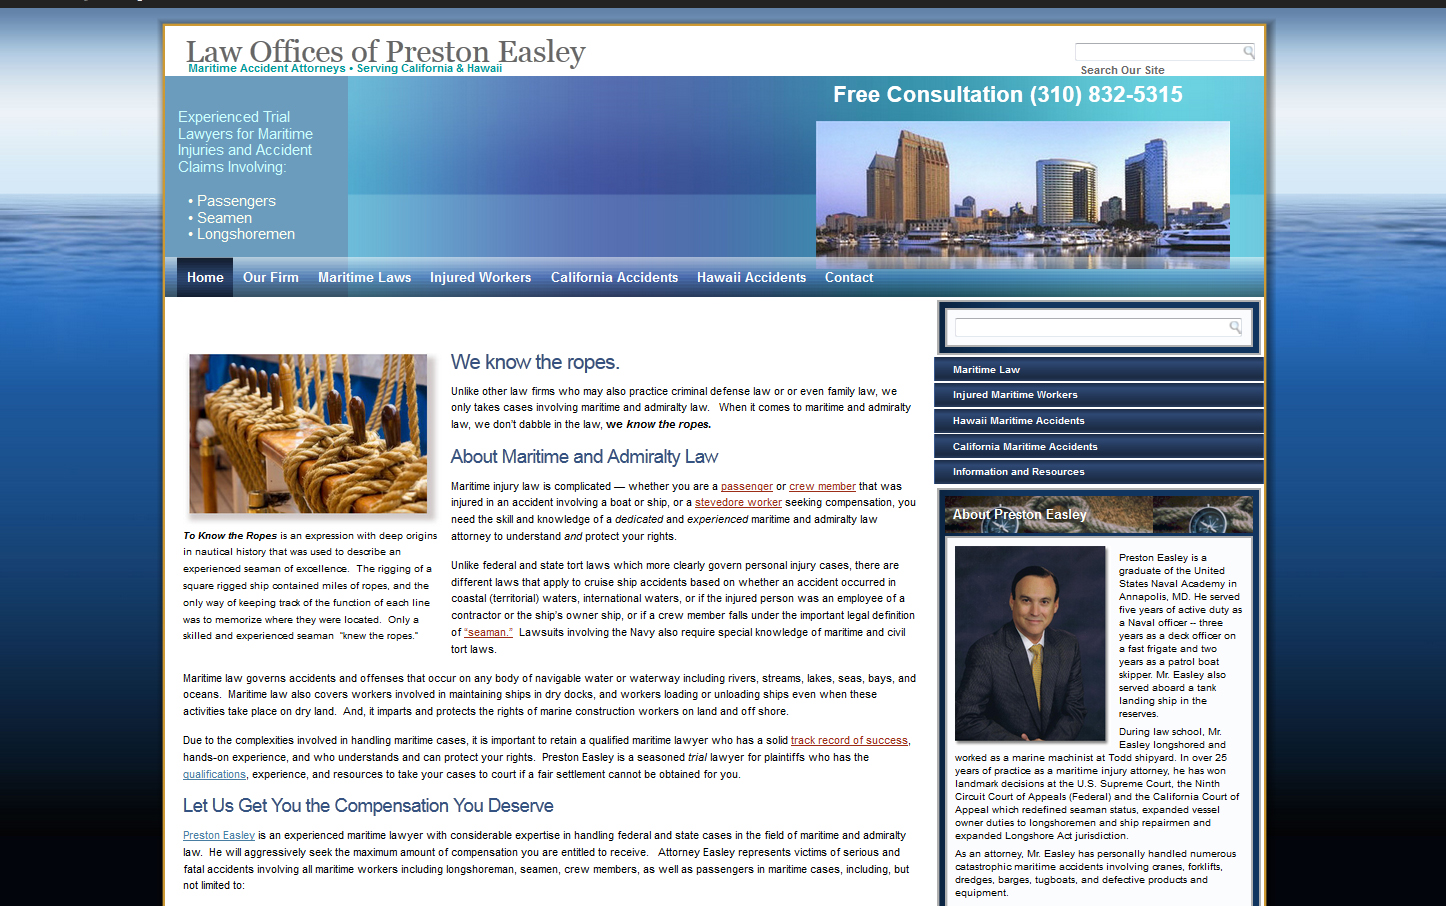 Preston Easley, Maritime Accident Attorney Website